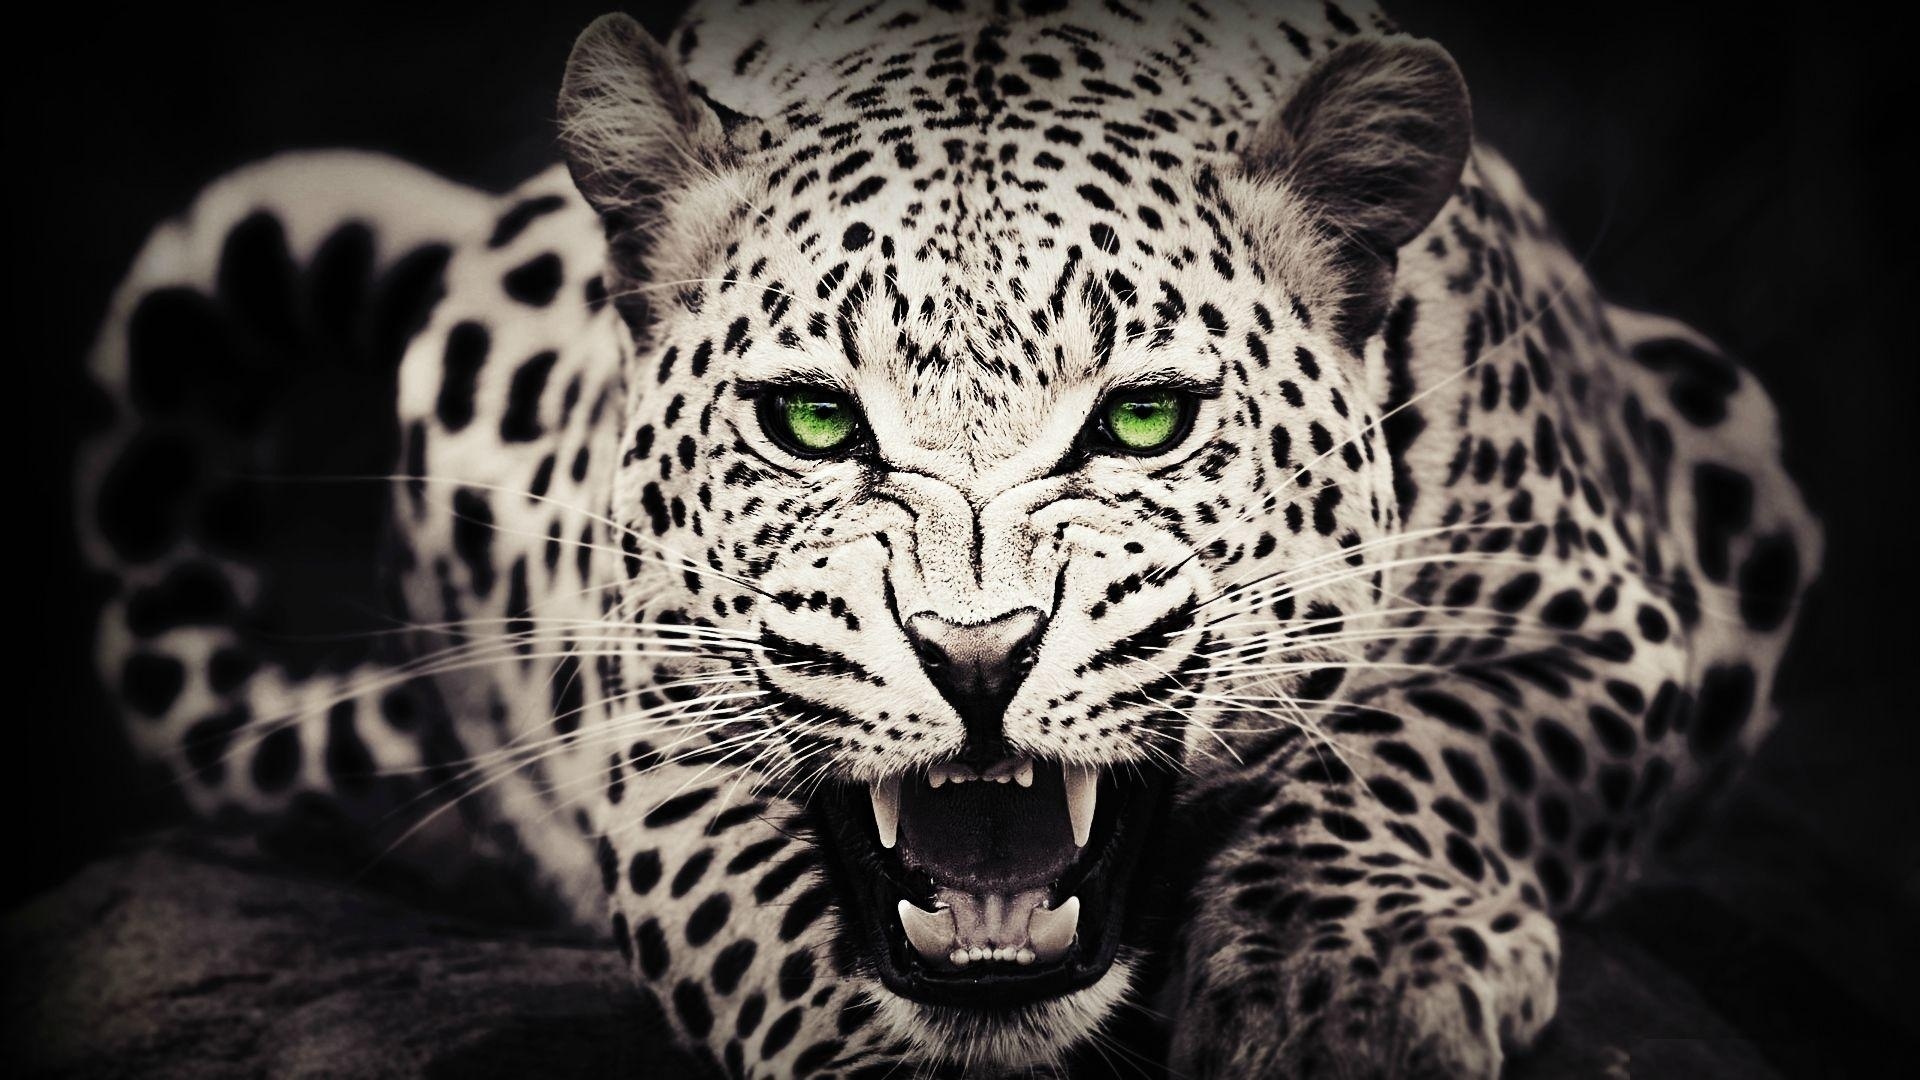 wild animals wallpapers - 47 wild animals modern 4k ultra hd images